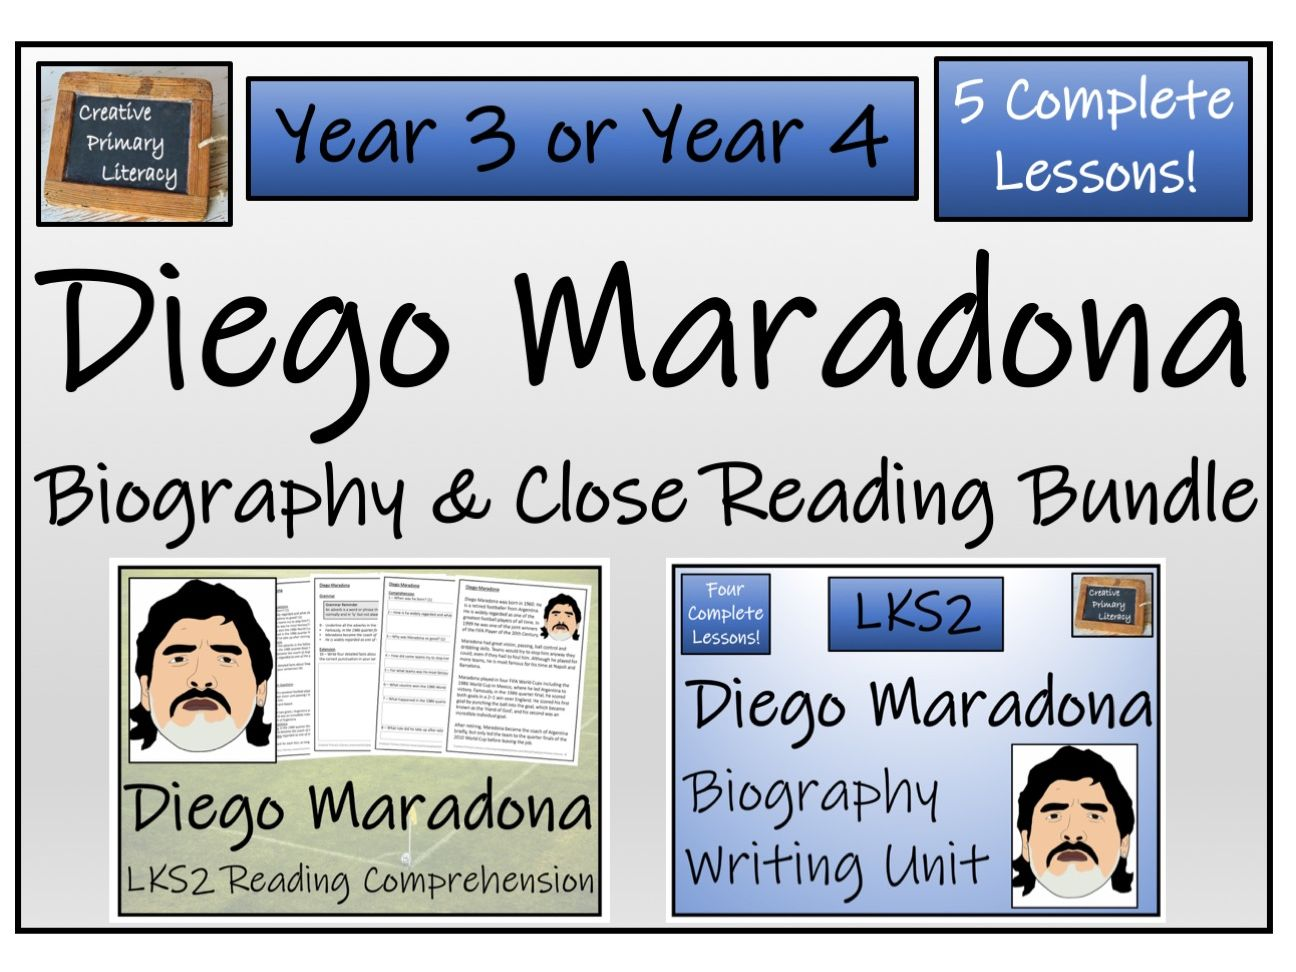 LKS2 Diego Maradona Reading Comprehension & Biography Writing Bundle